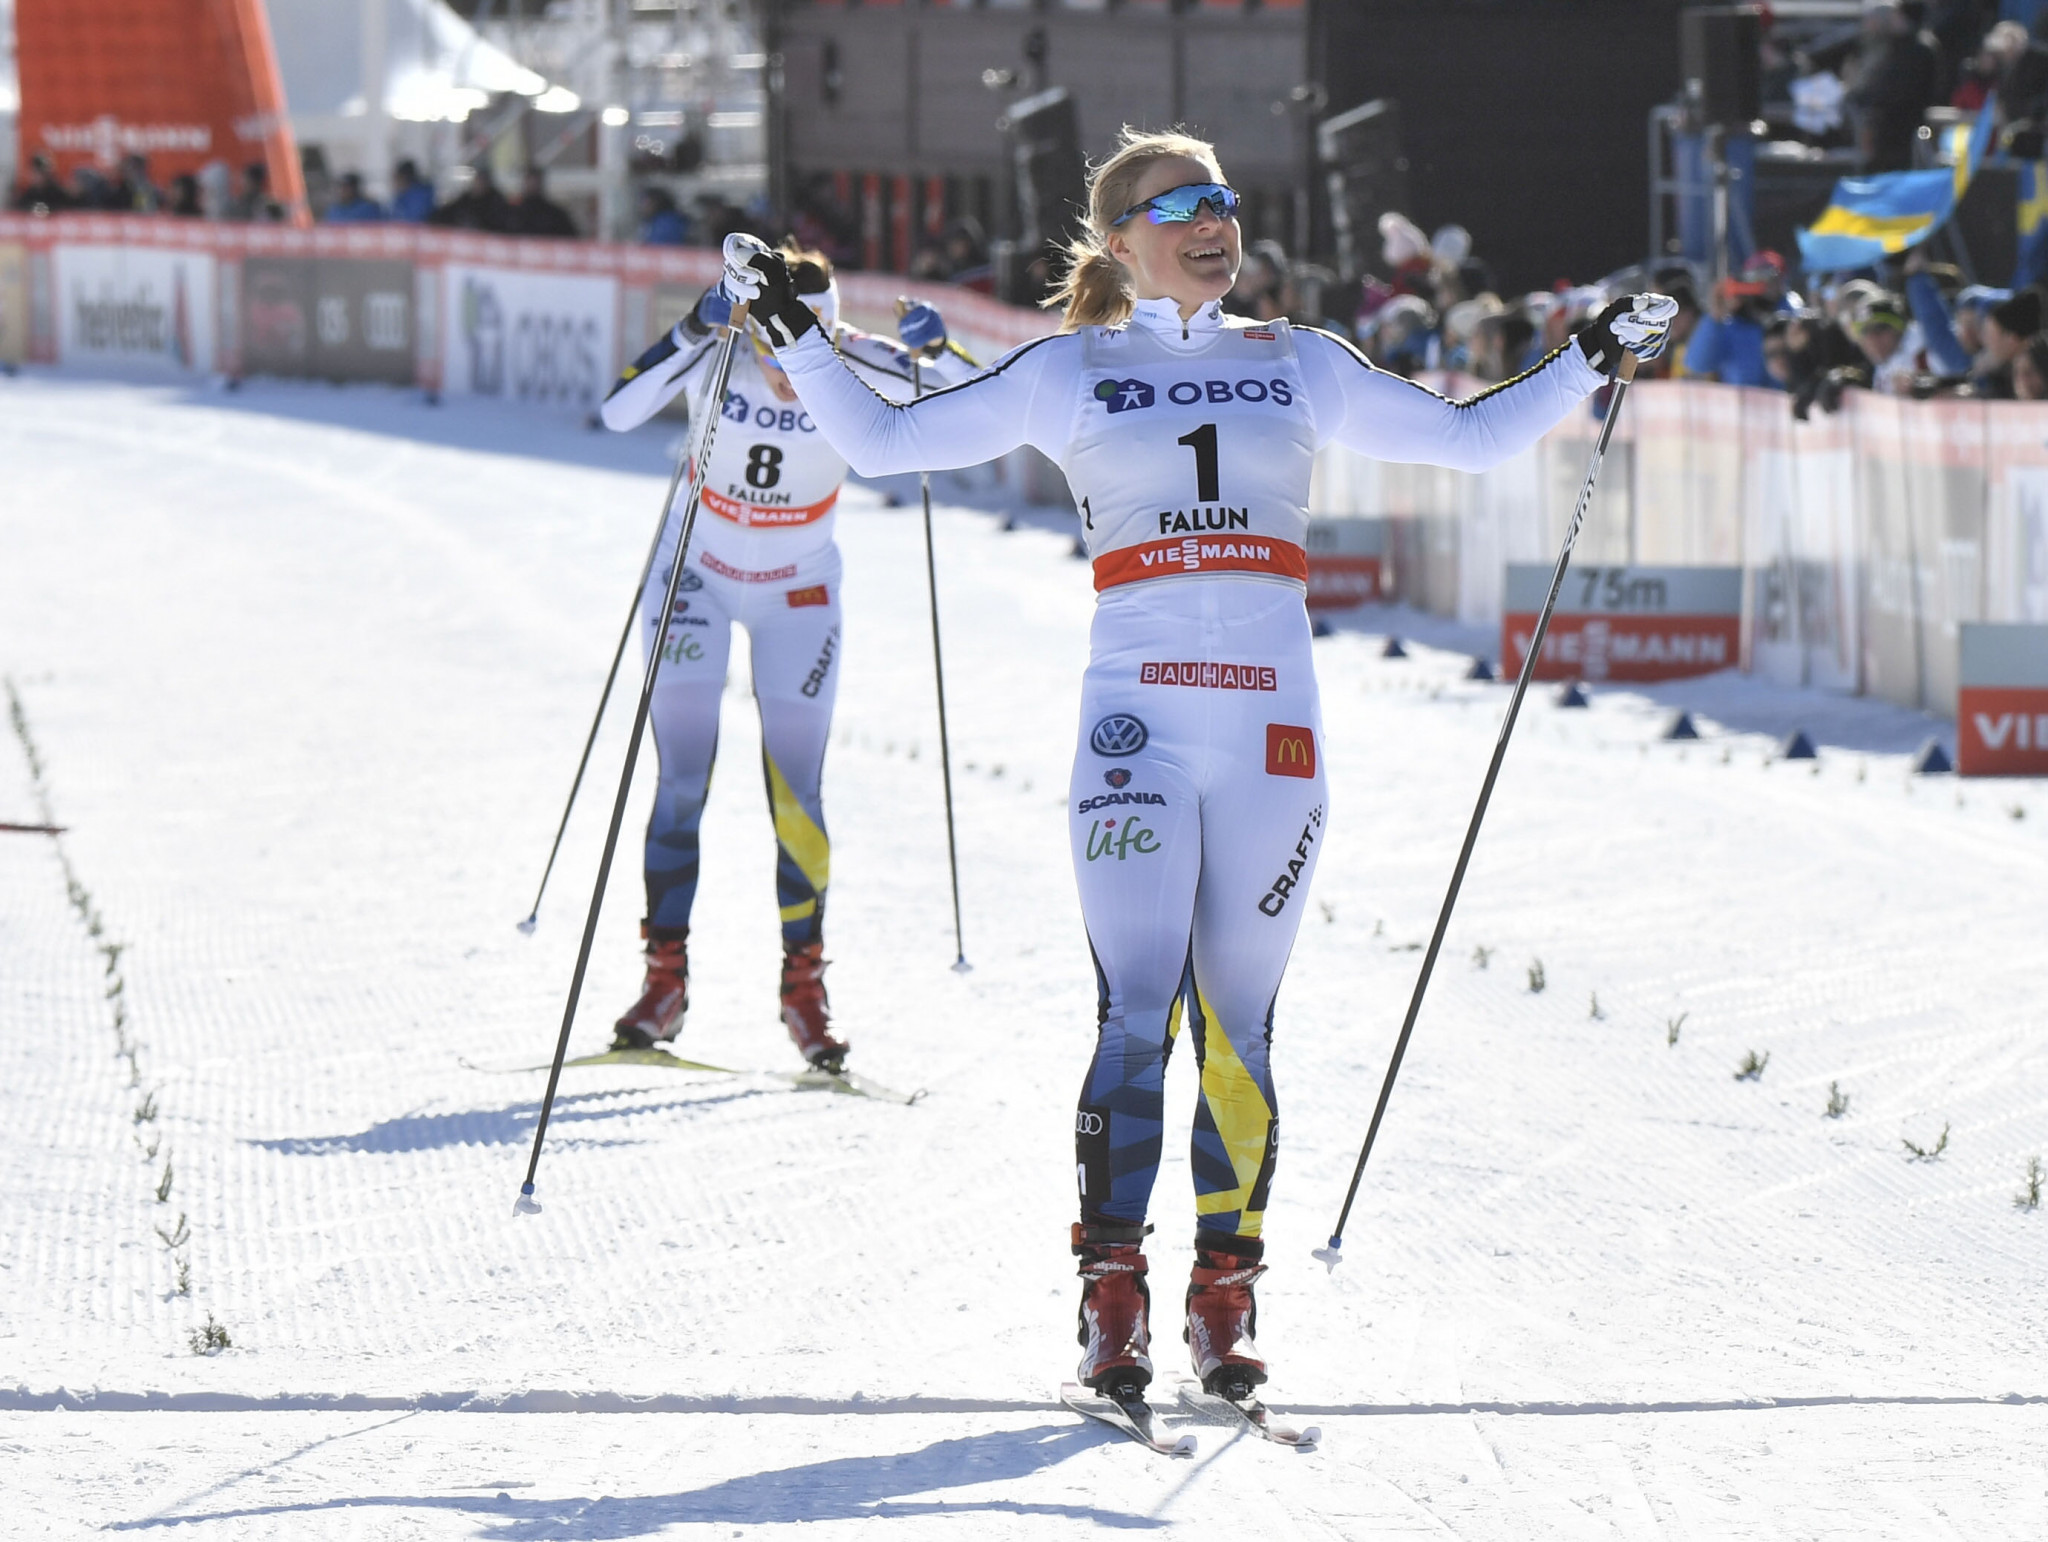 Falk leads Swedish double at FIS Cross Country World Cup as Falla wins sprint title